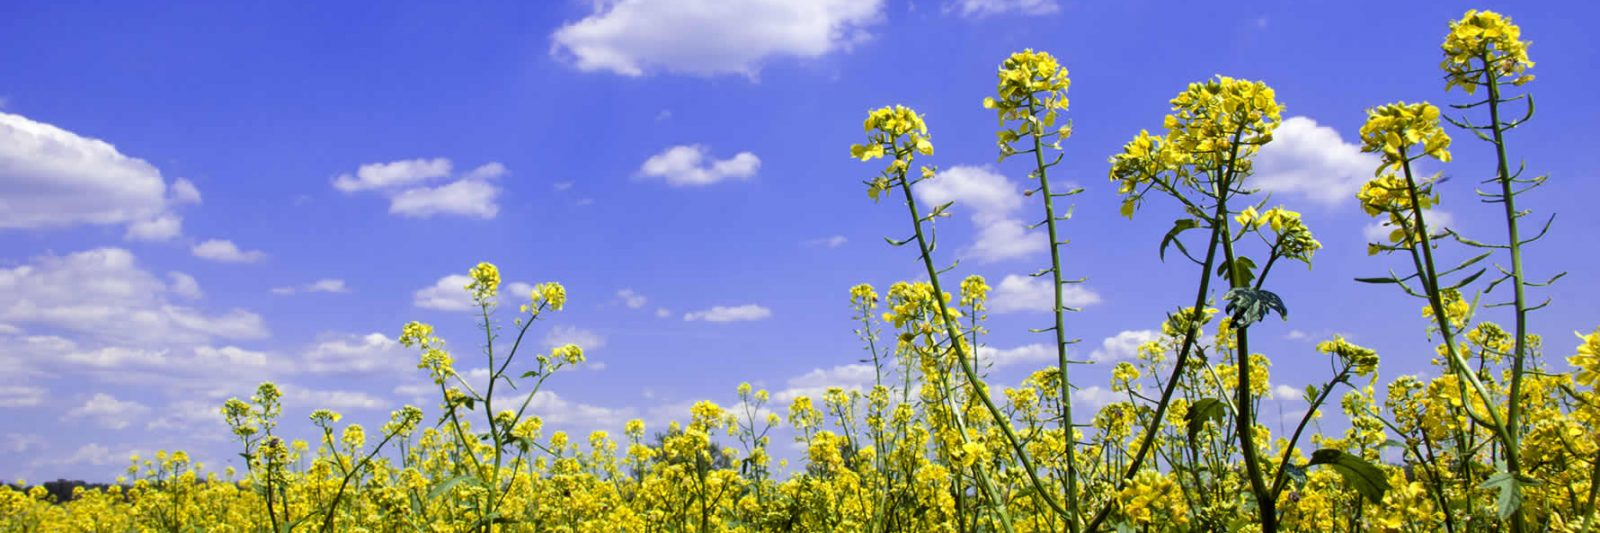 A Mustard Crop in Bloom